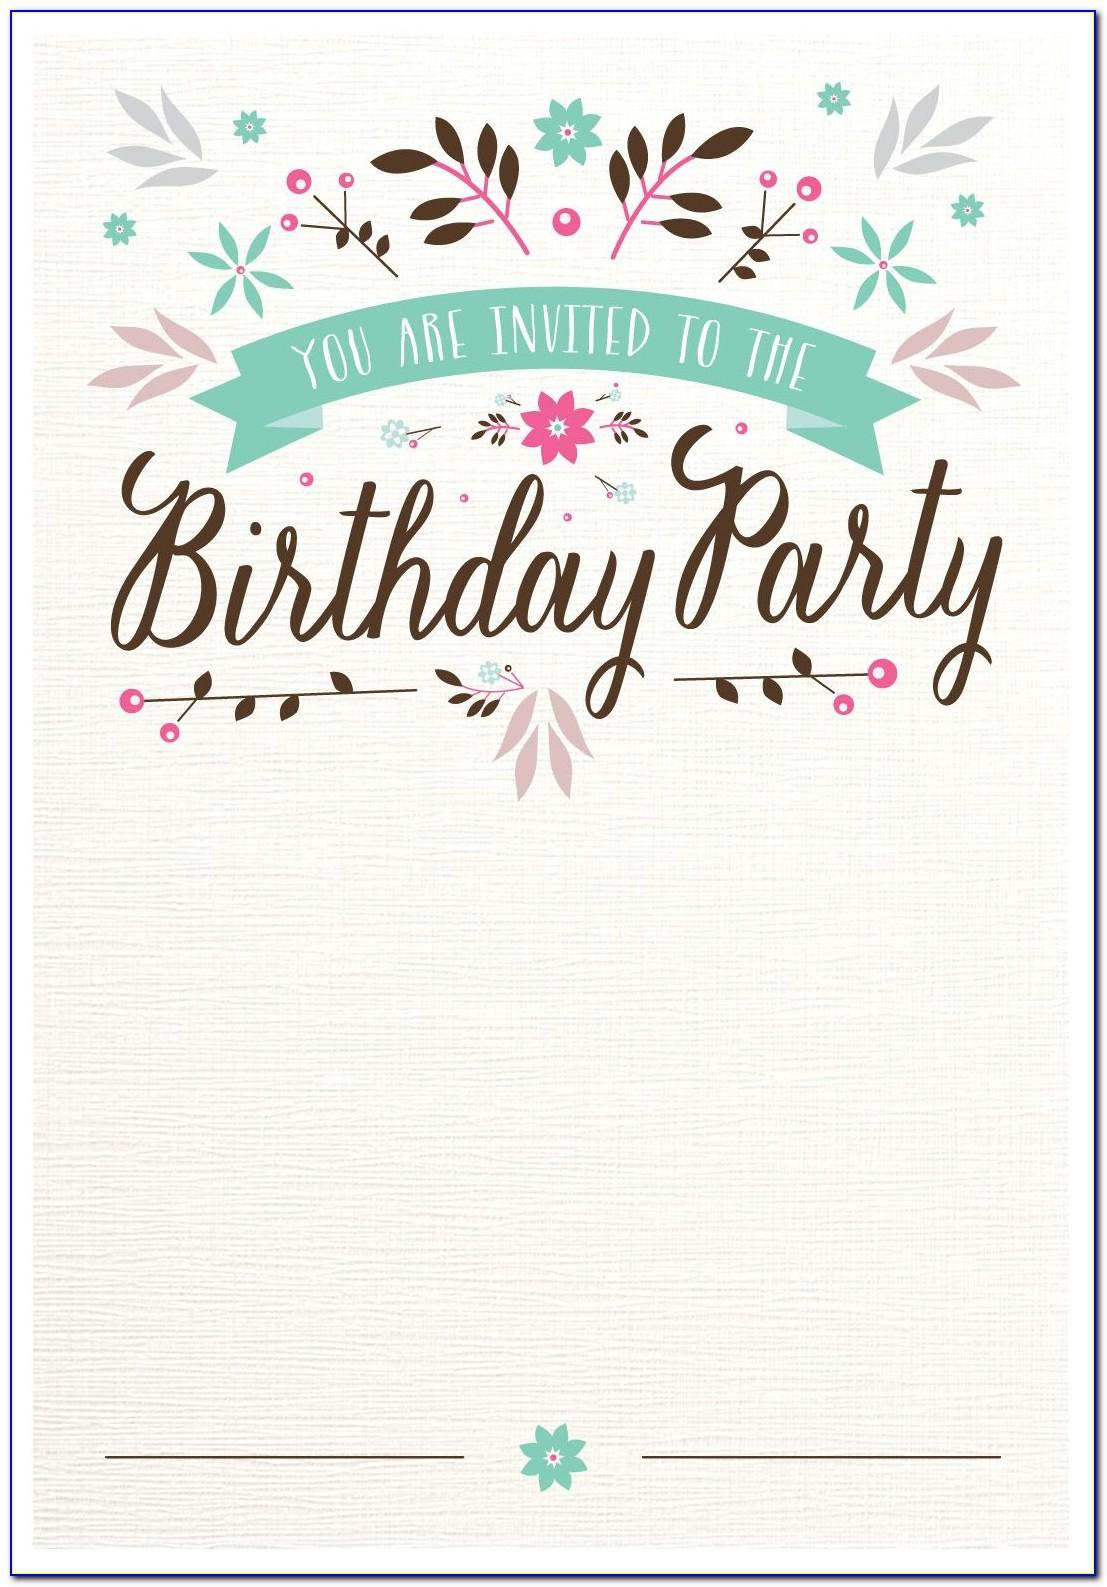 Free Animated Birthday Cards For Granddaughter